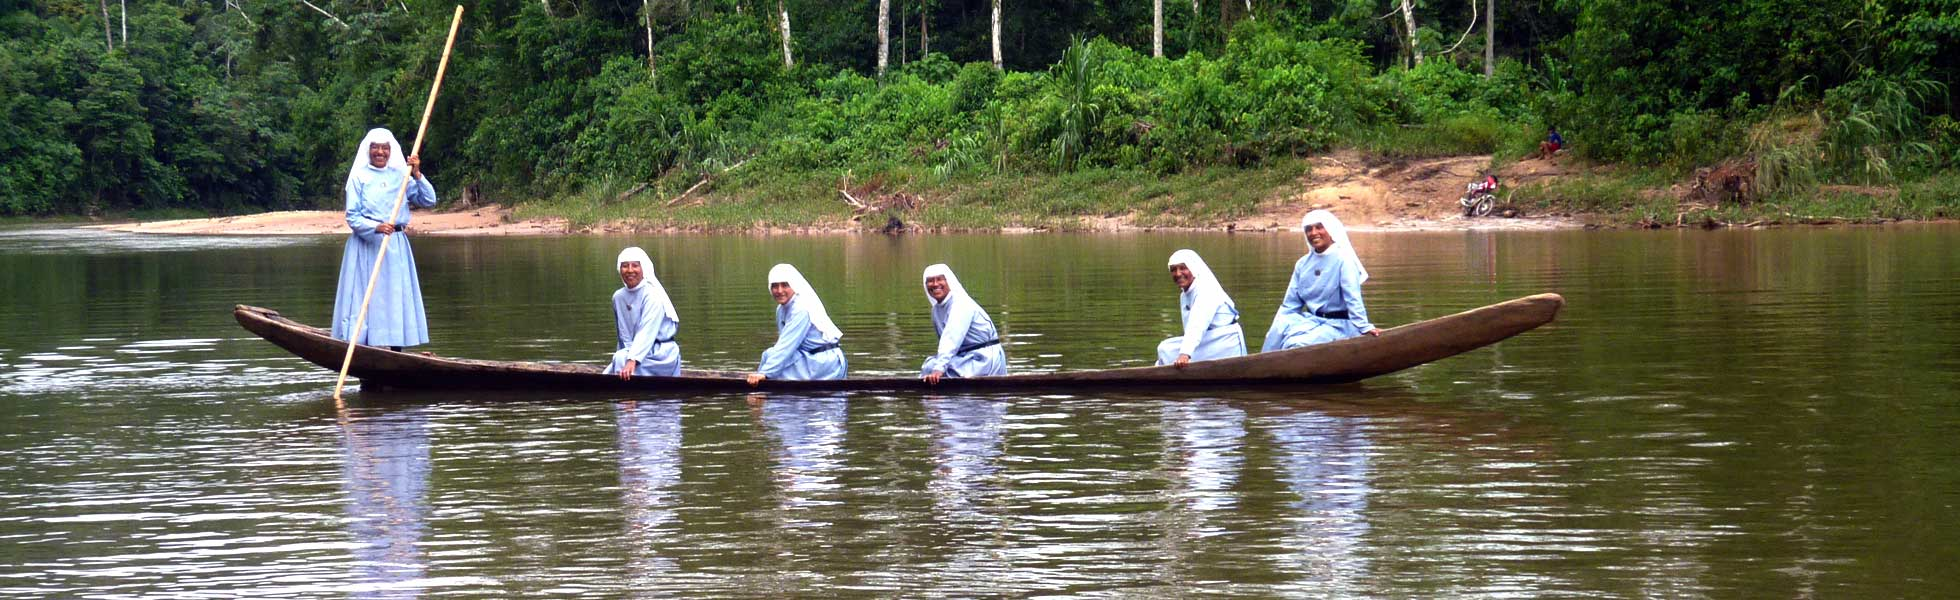 In Paraguay religious sisters work there, where priests can rarely visit